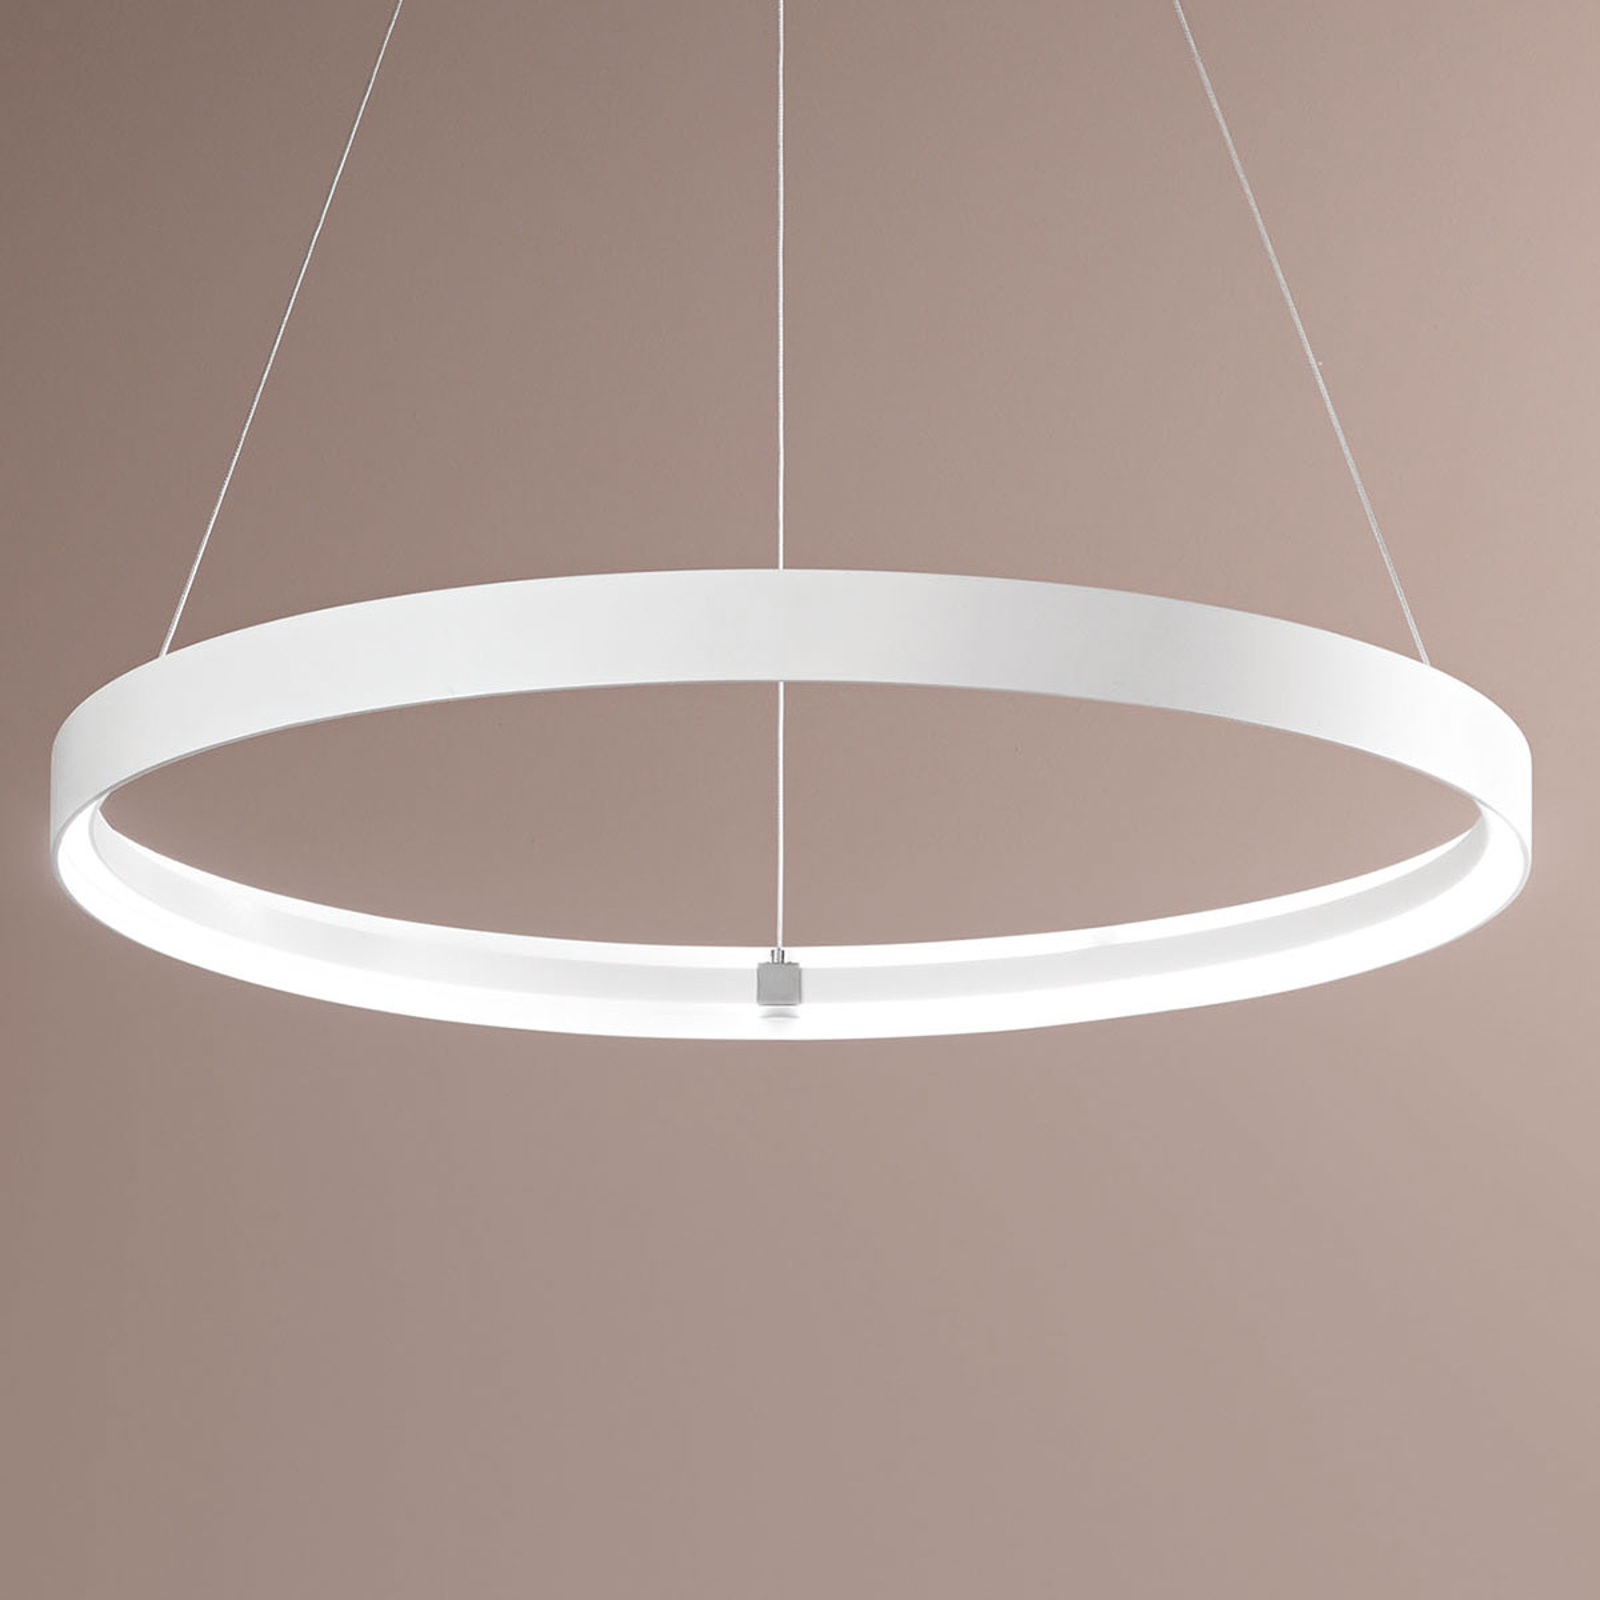 Élégante suspension LED Double